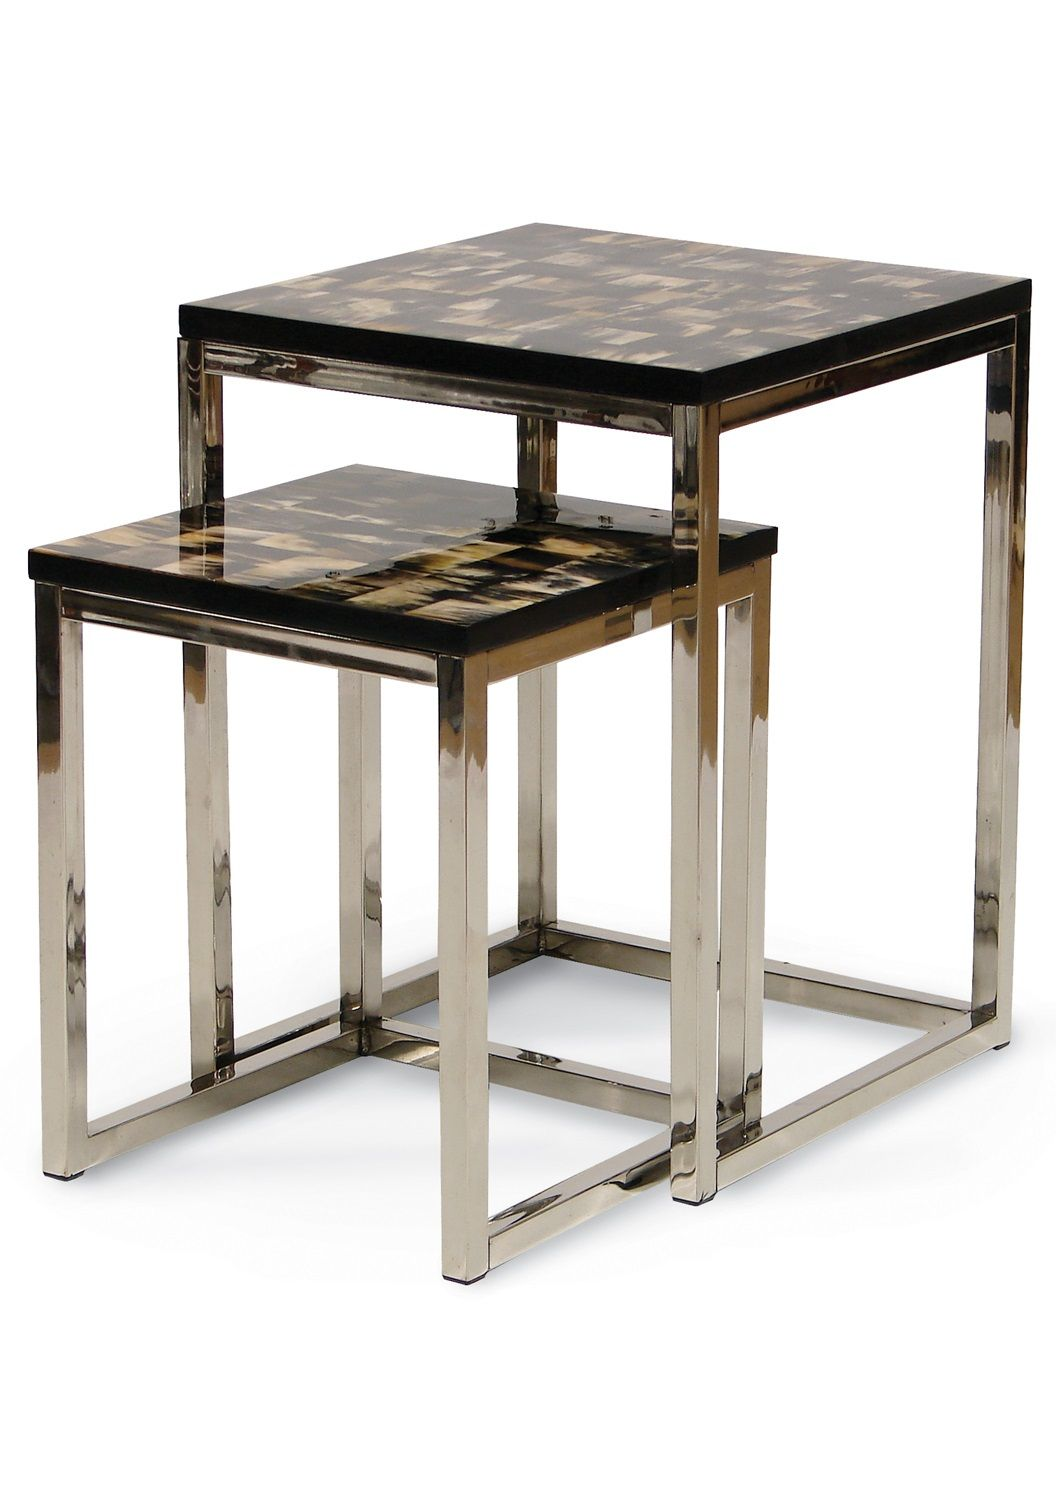 instyle decor beverly hills side tables end lamp contemporary accent strip between carpet and wood small mosaic outdoor table used patio furniture modern dining brass concrete top